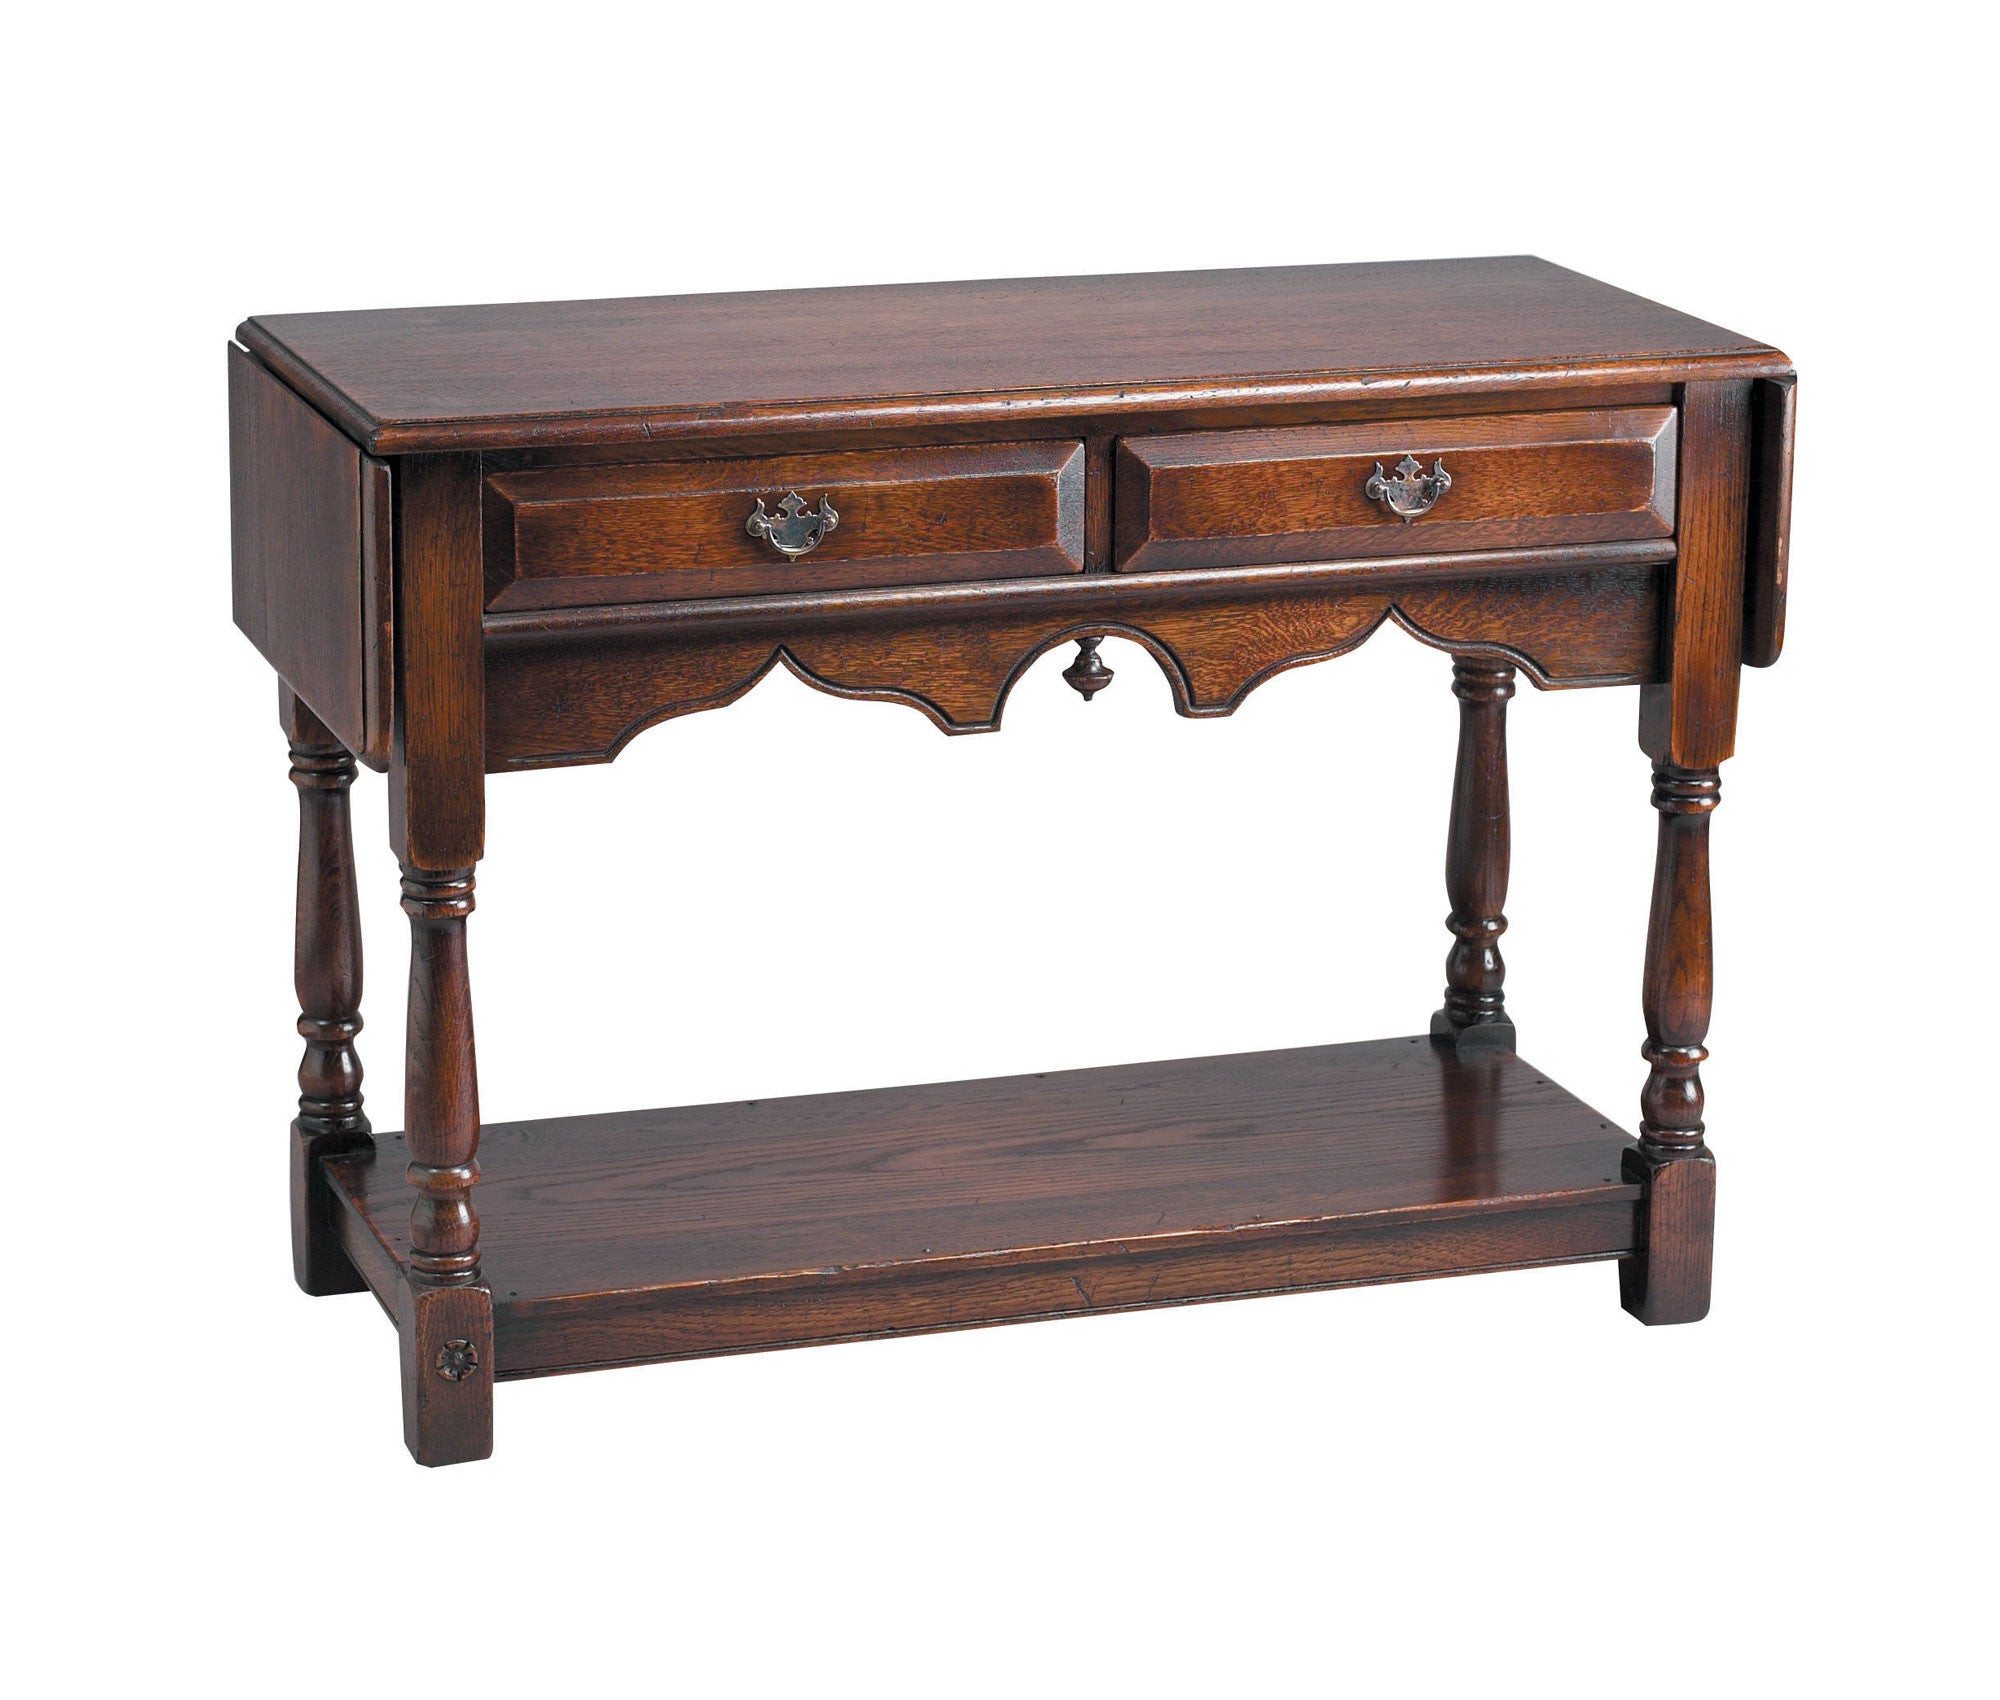 RB525-Balmoral-Serving-Table